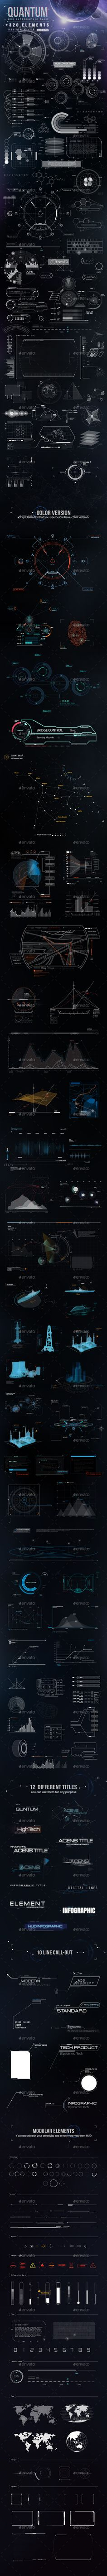 Buy Quantum - HiTech HUD Creator Kit by Pixflow on GraphicRiver. With this file you will get more than 250 modular HiTech HUD Elements, So you can literally create infinite possibil. Game Design, Graphisches Design, Cv Inspiration, Graphic Design Inspiration, Futuristic Design, Ui Web, User Interface Design, Infographic Templates, Data Visualization